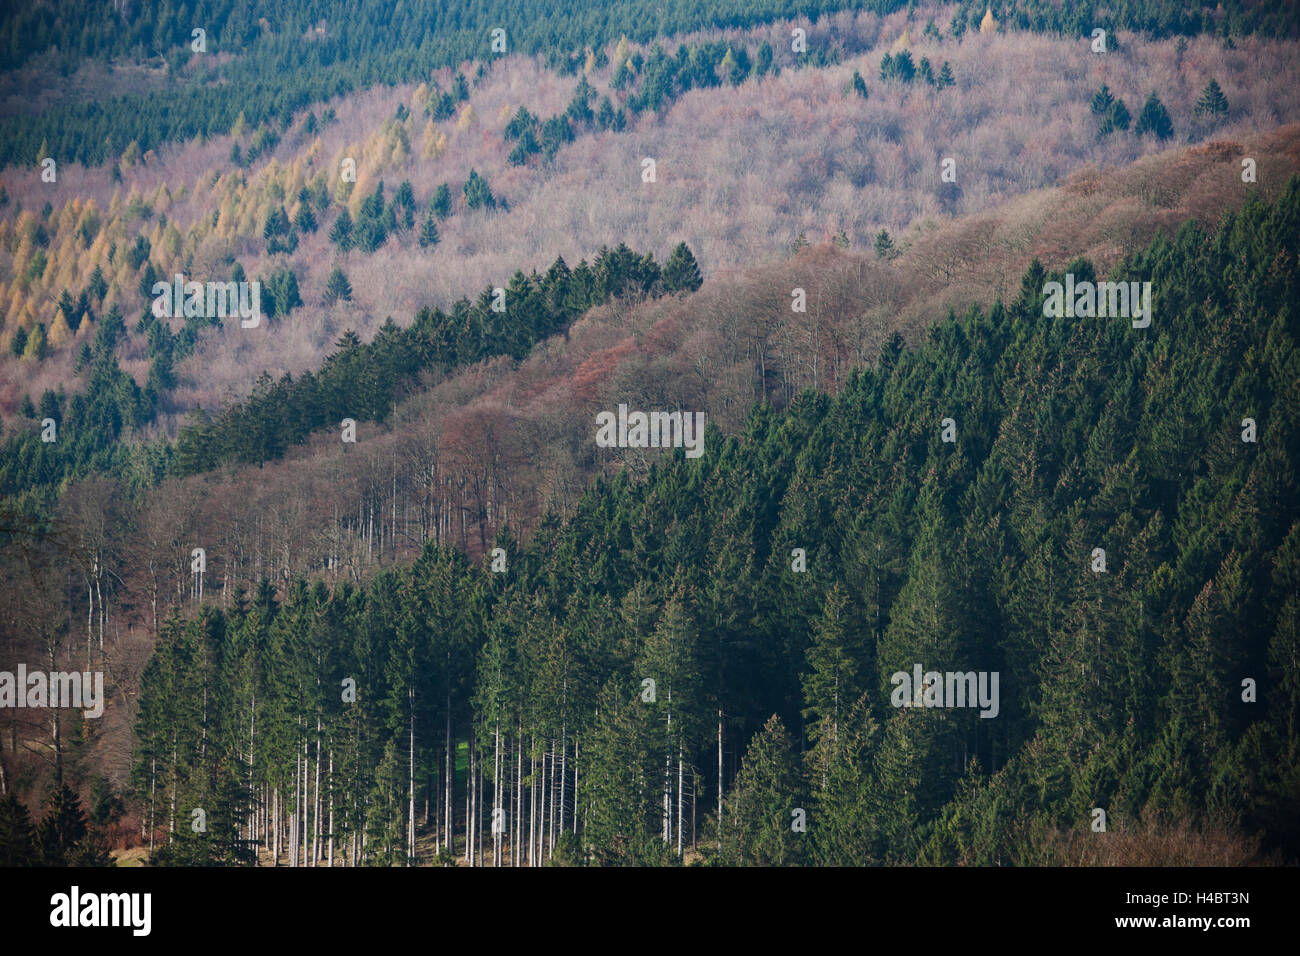 Mixed forest with beeches, larches, spruces in Germany - Stock Image